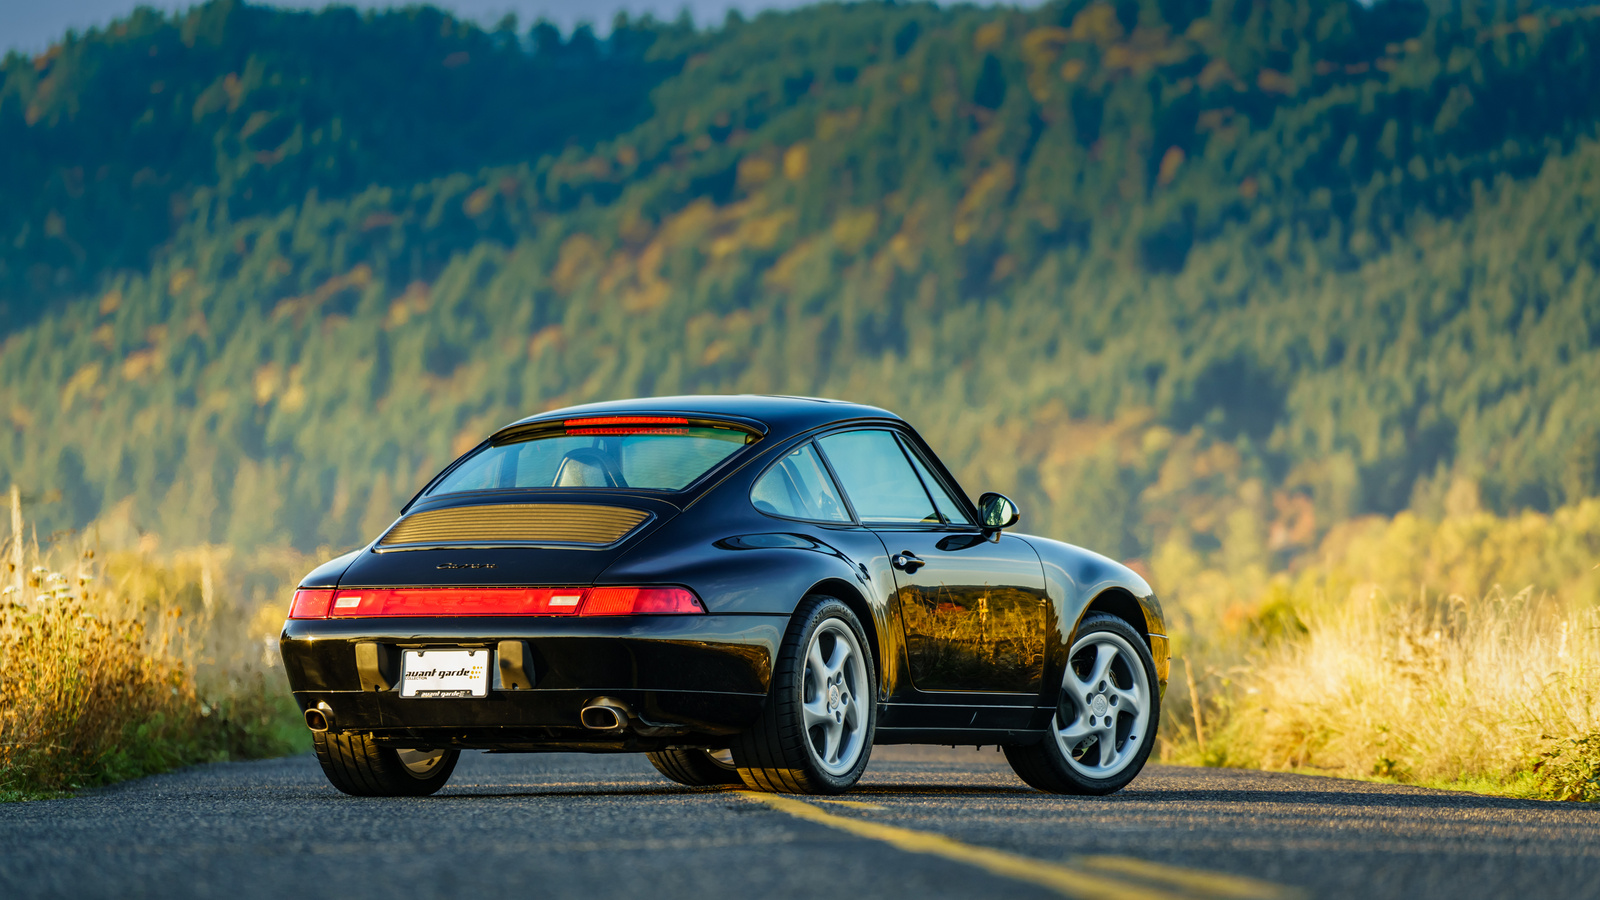 Porsche 993 C2 for Sale A-GC com-21 by Jsbfoto